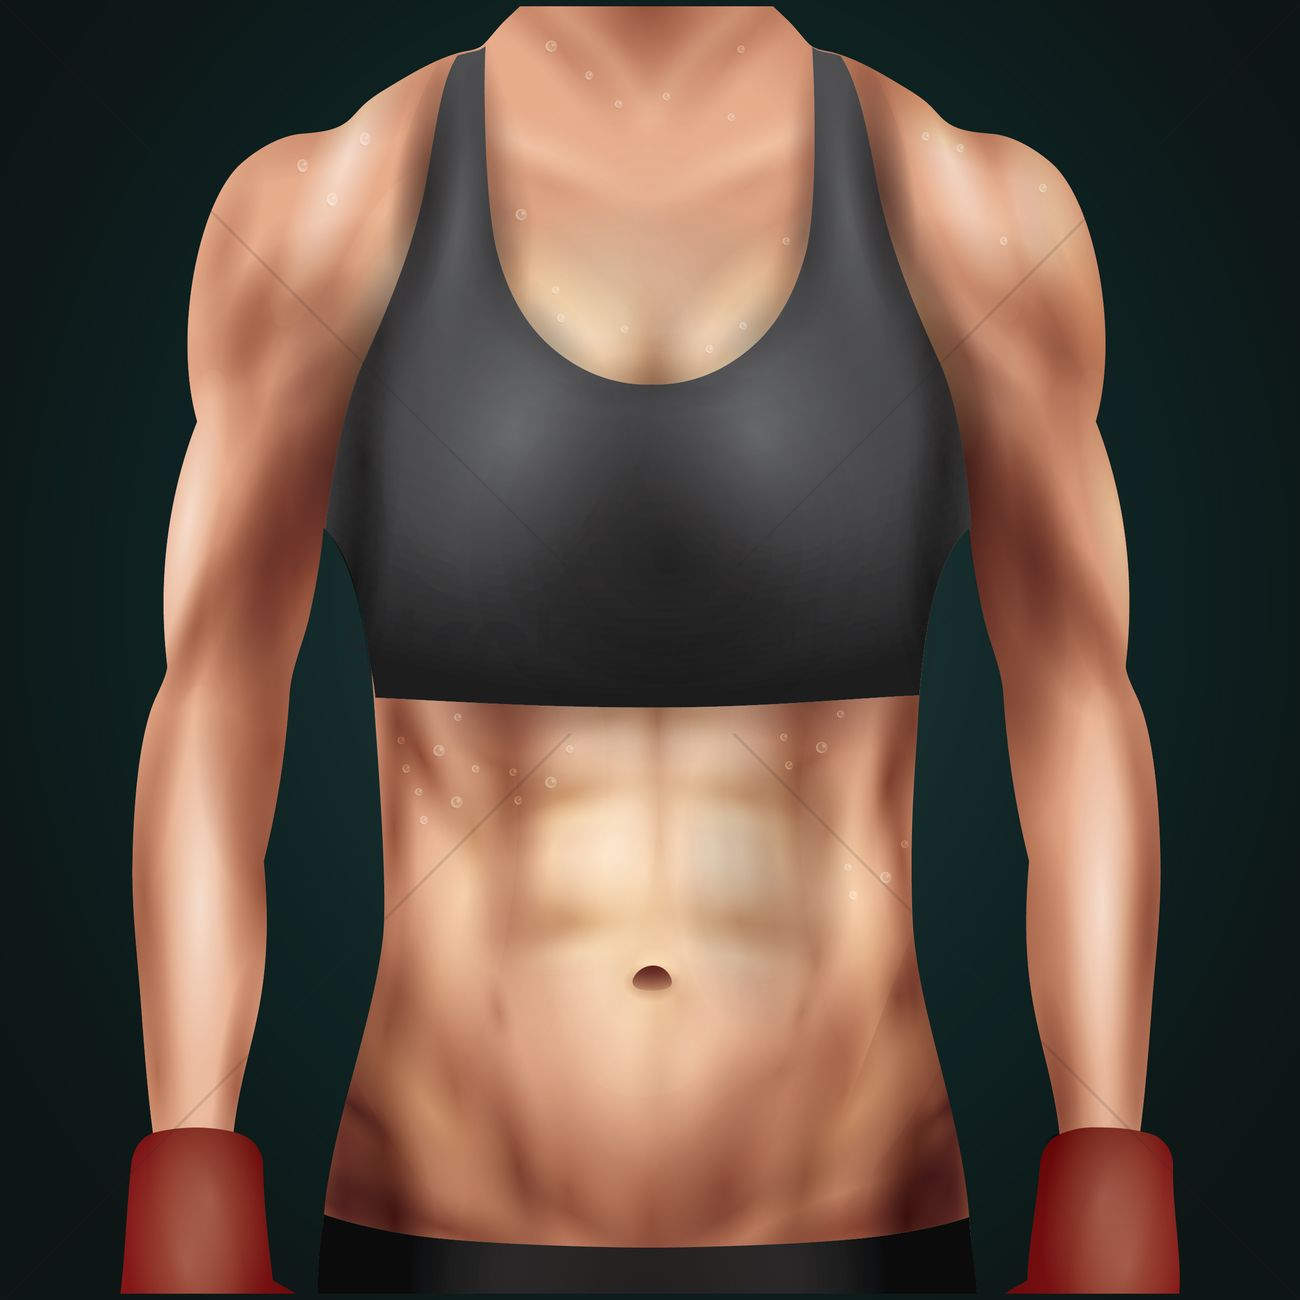 Pierre clipart abs image black and white library Fitness woman showing abs Vector Image - 1810555 ... image black and white library